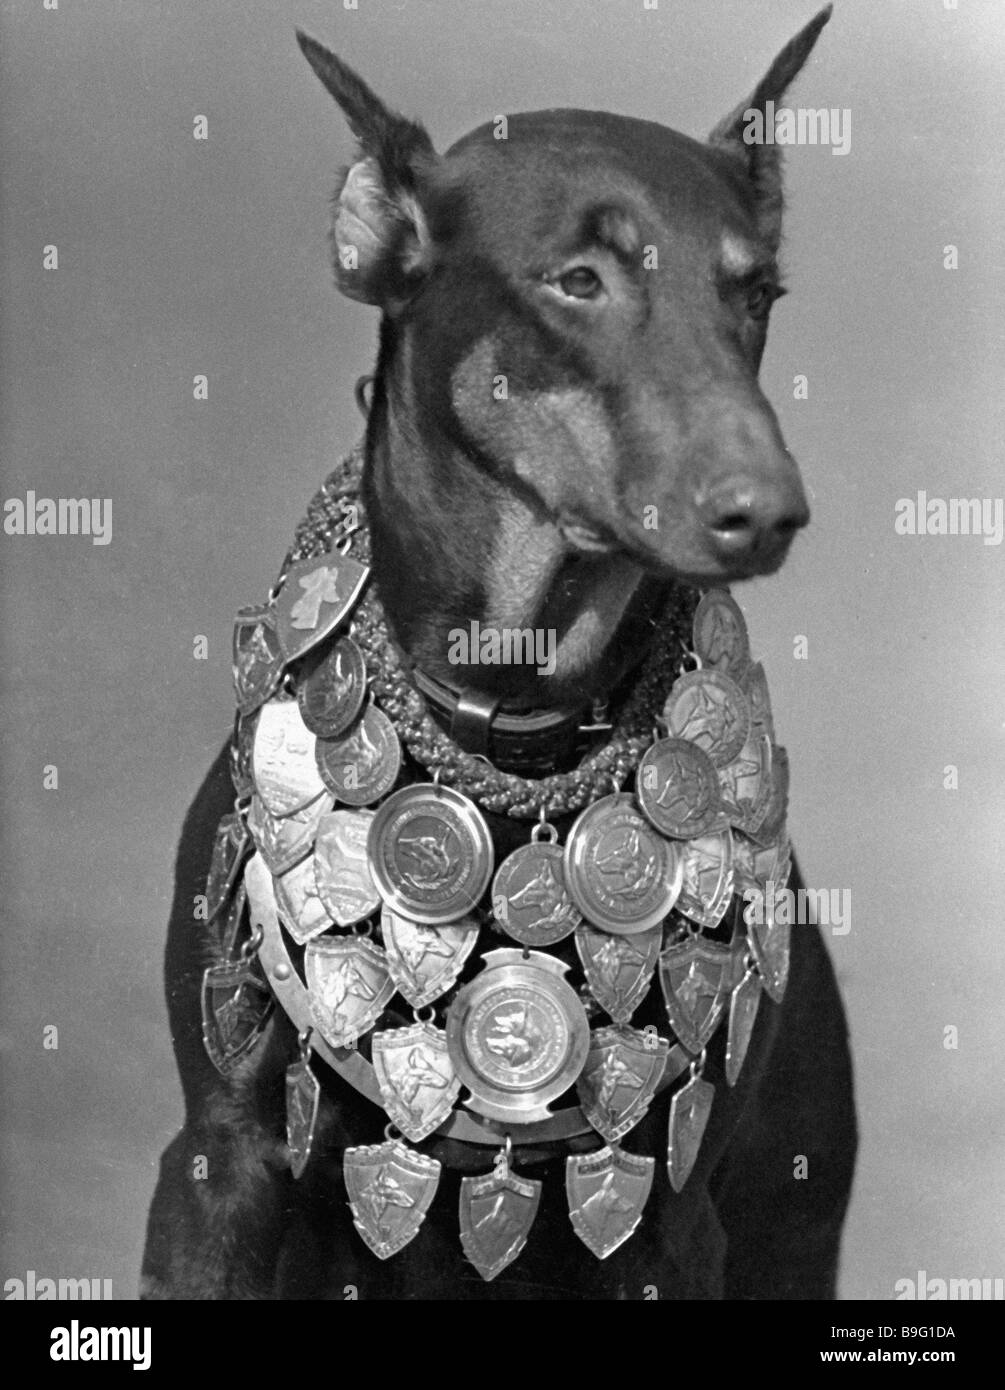 A Dobermann dog at the Working Dog Show - Stock Image